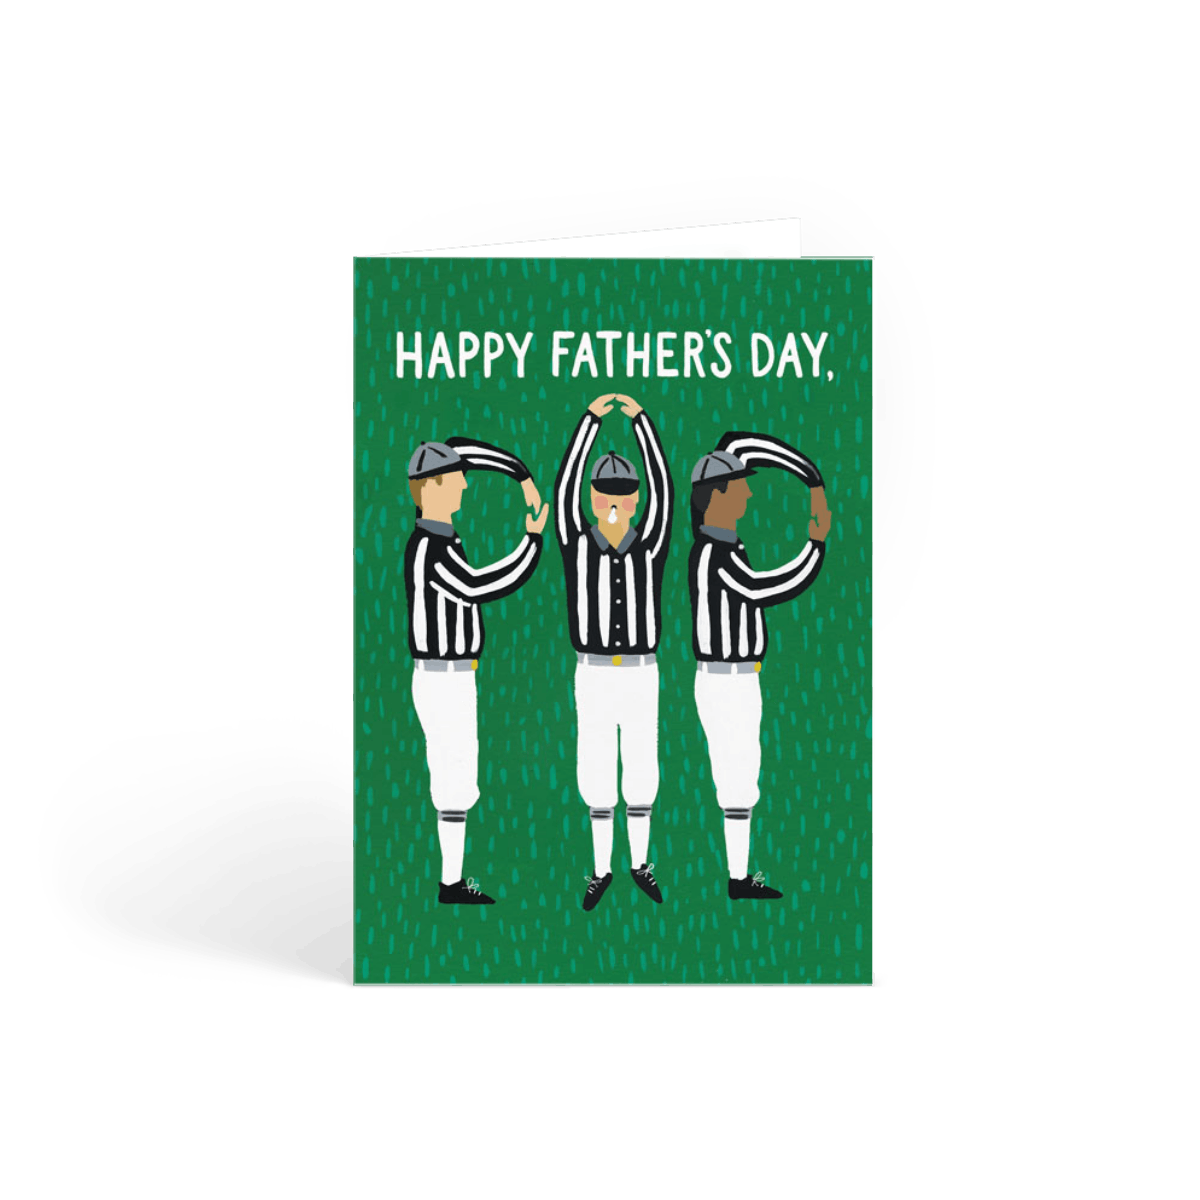 Https%3a%2f%2fwww.papier.com%2fproduct image%2f19946%2f2%2ffather s day referees 5105 front 1488199419.png?ixlib=rb 1.1